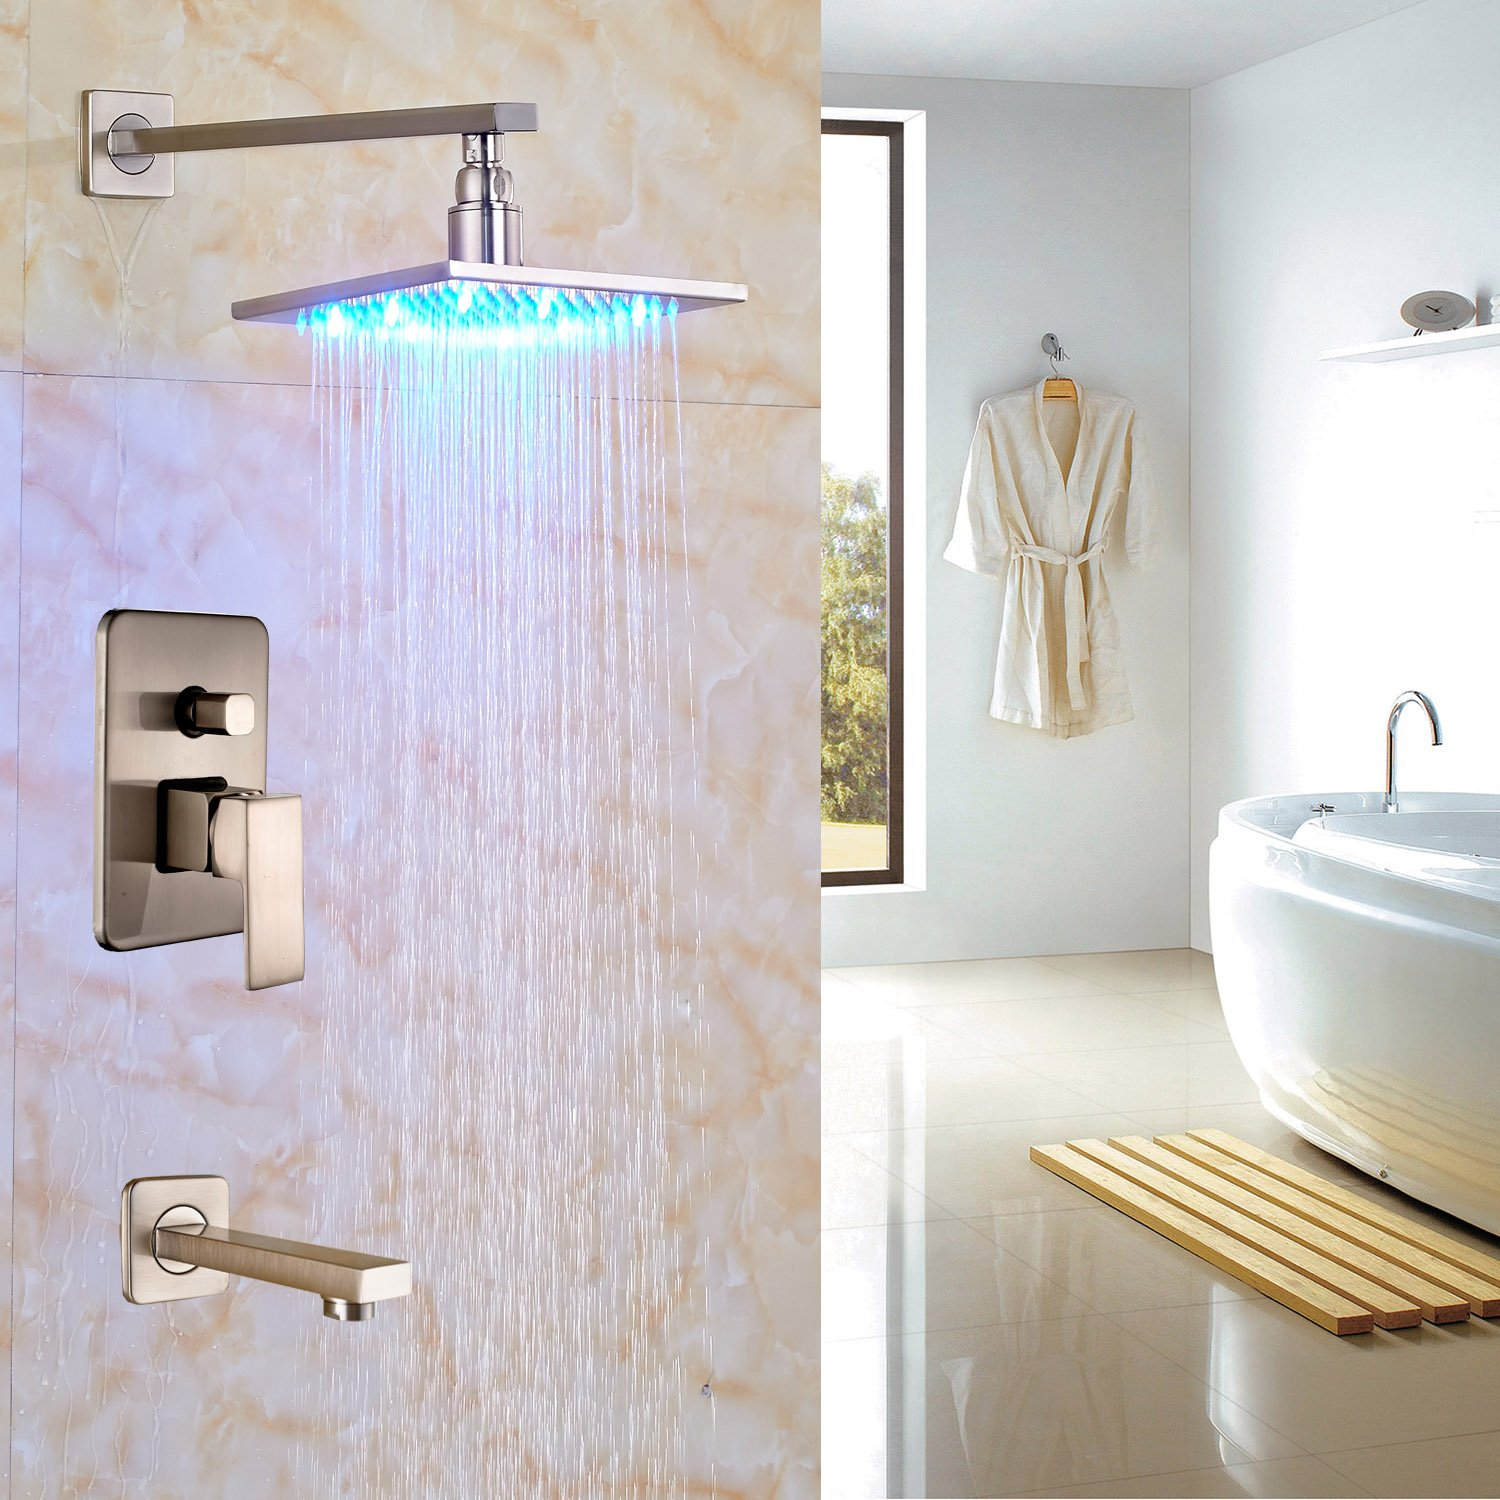 Rozin Bath LED light 8'' Top Rainfall Shower Set with Tub Spout Tap Brushed Nickel by Rozin